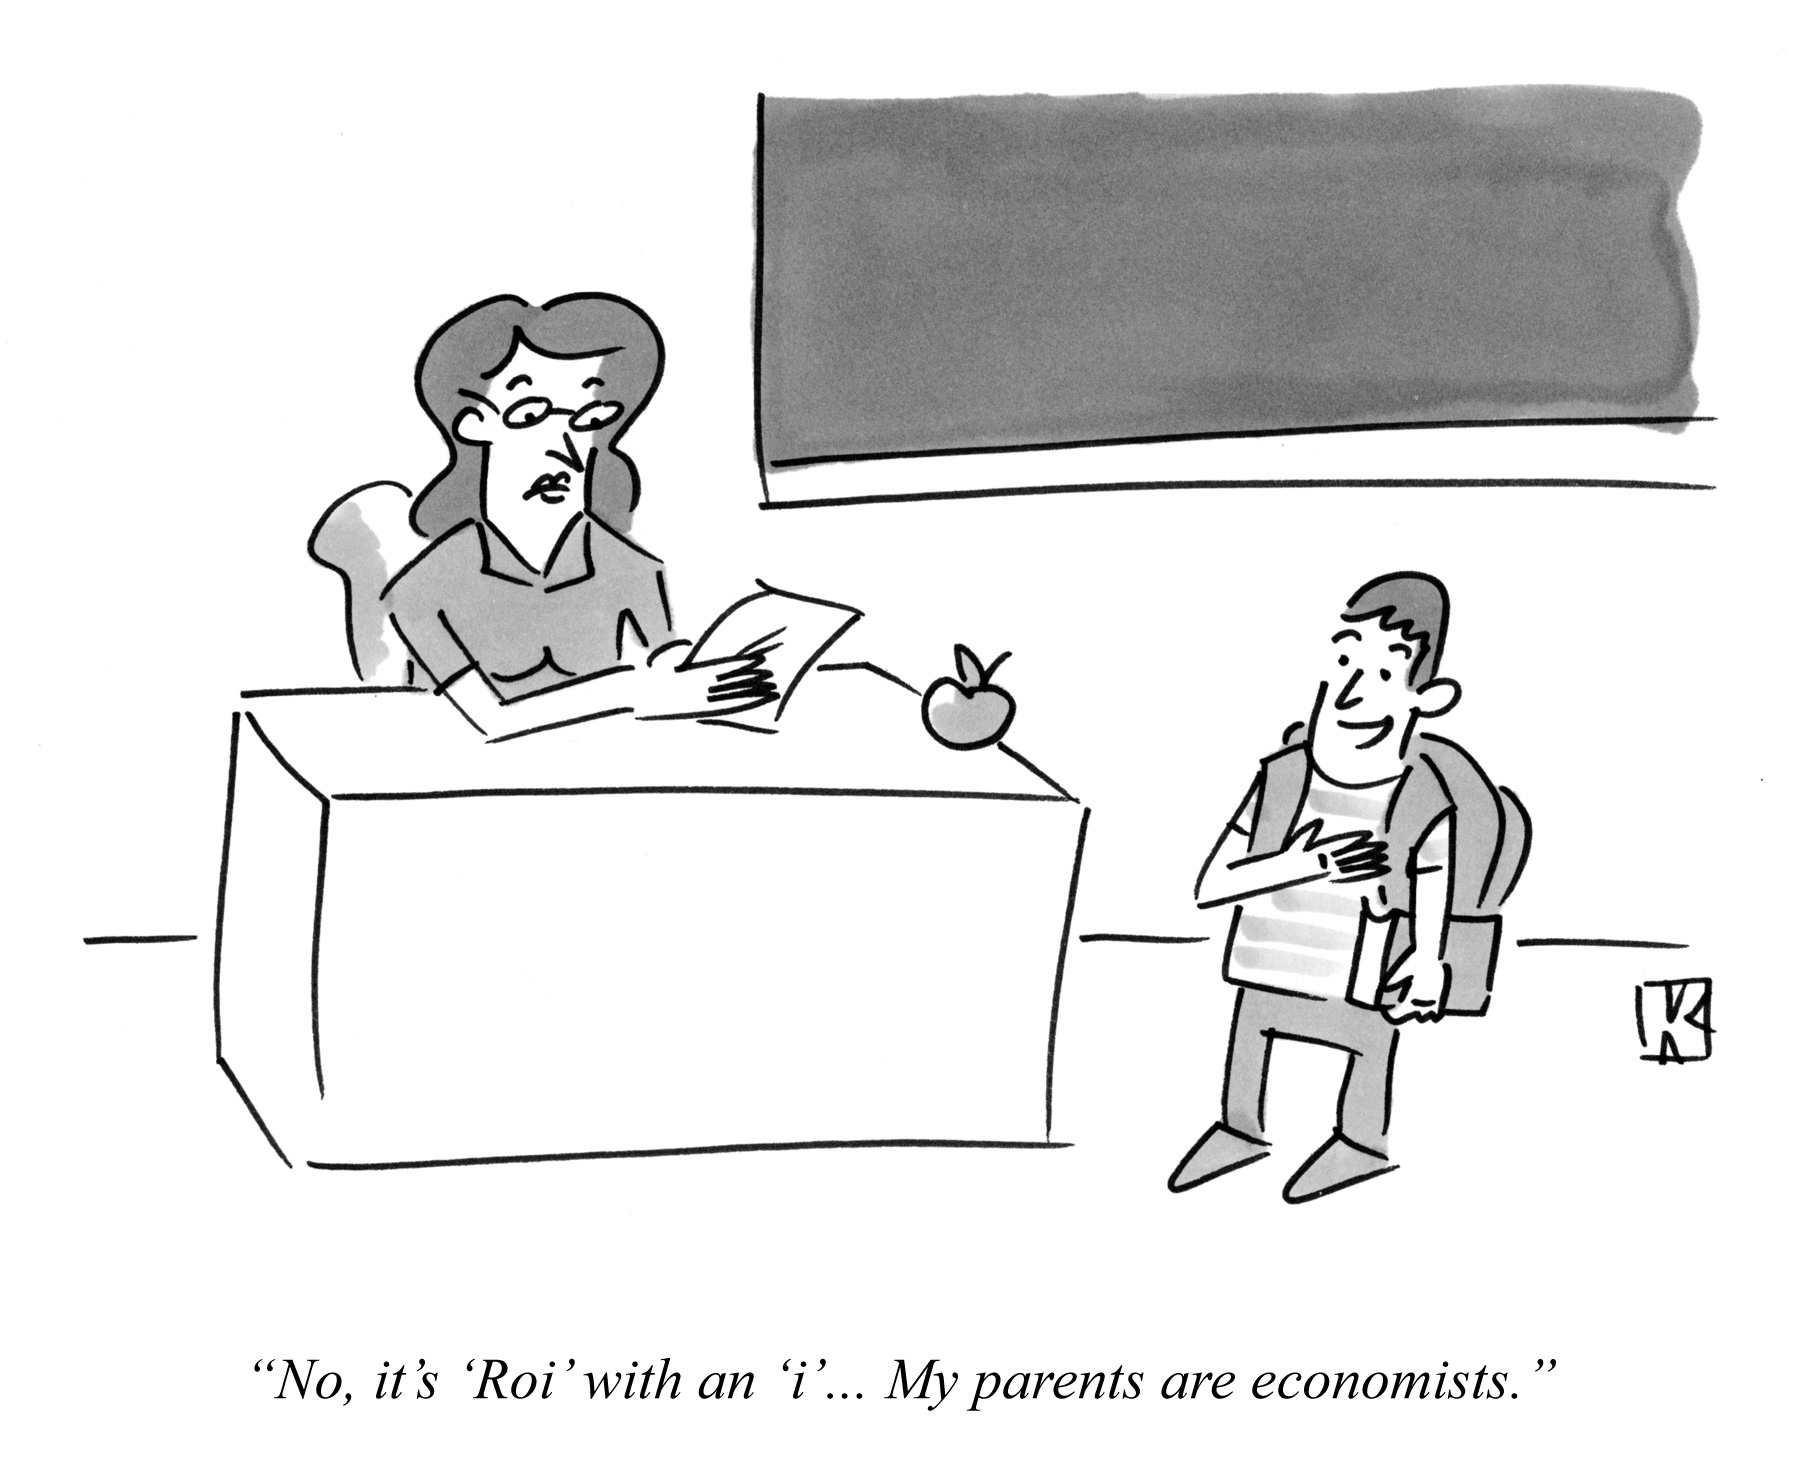 No, it's 'Roi' with an 'i'... My parents are economists.